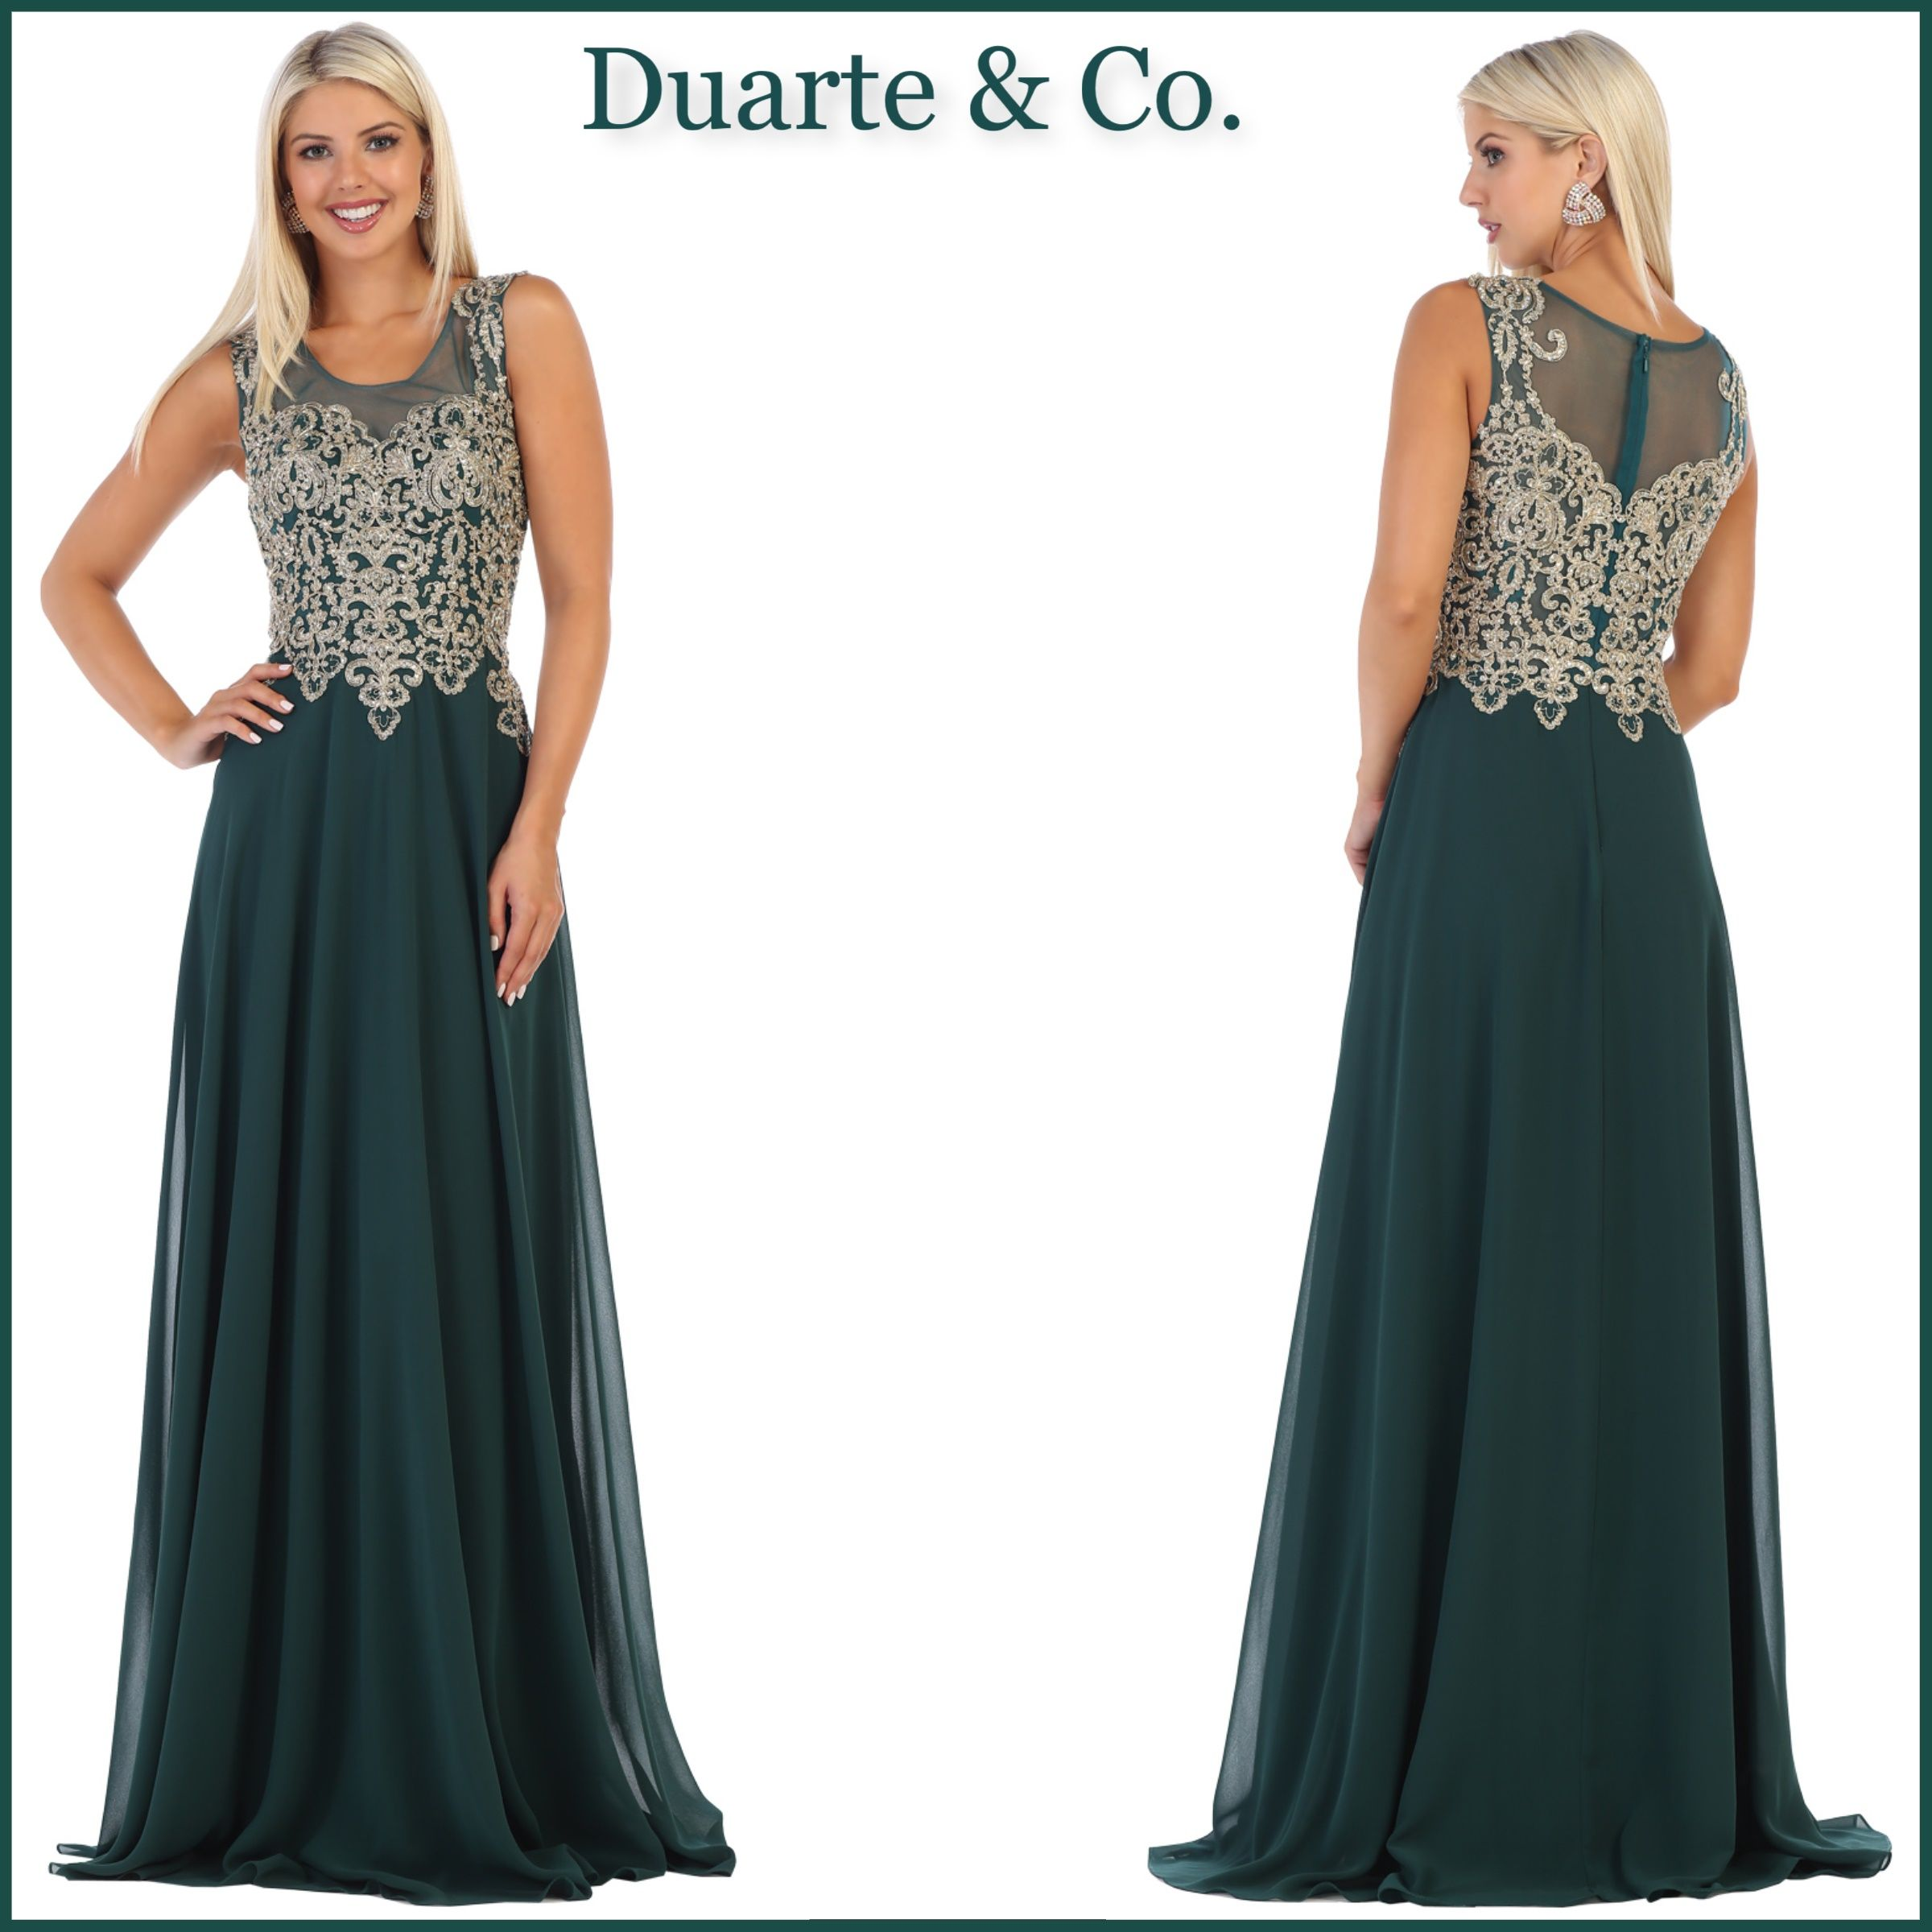 ad711f54661  146.00 Elegant Chiffon Party Dress has metallic lace   hand beaded  rhinestones over sheer mesh material at the bodice with a chiffon skirt.